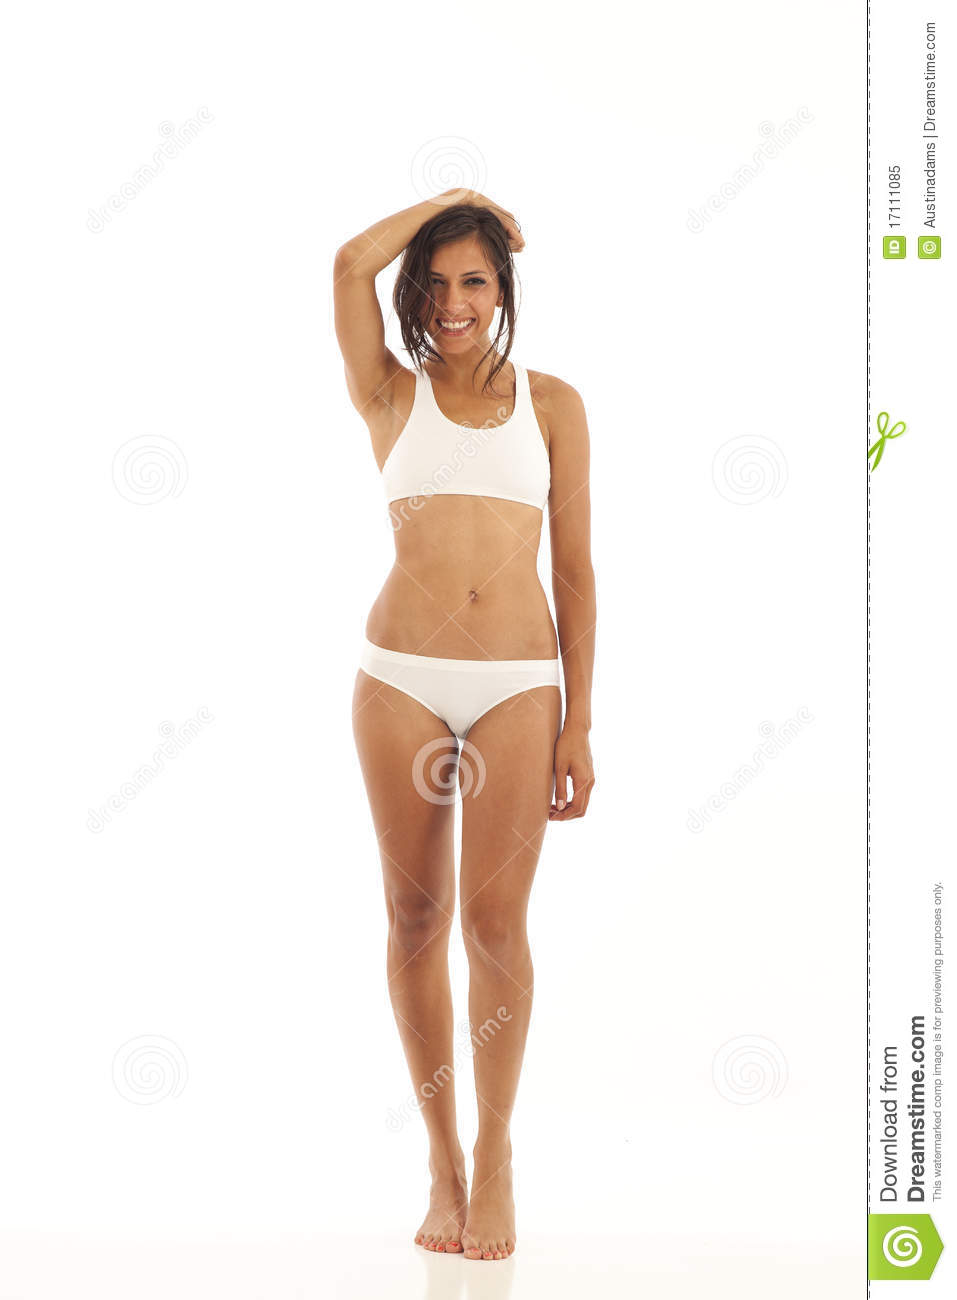 1acf0fadd69 Young Woman With Sports Bra And Underwear Stock Image - Image of ...